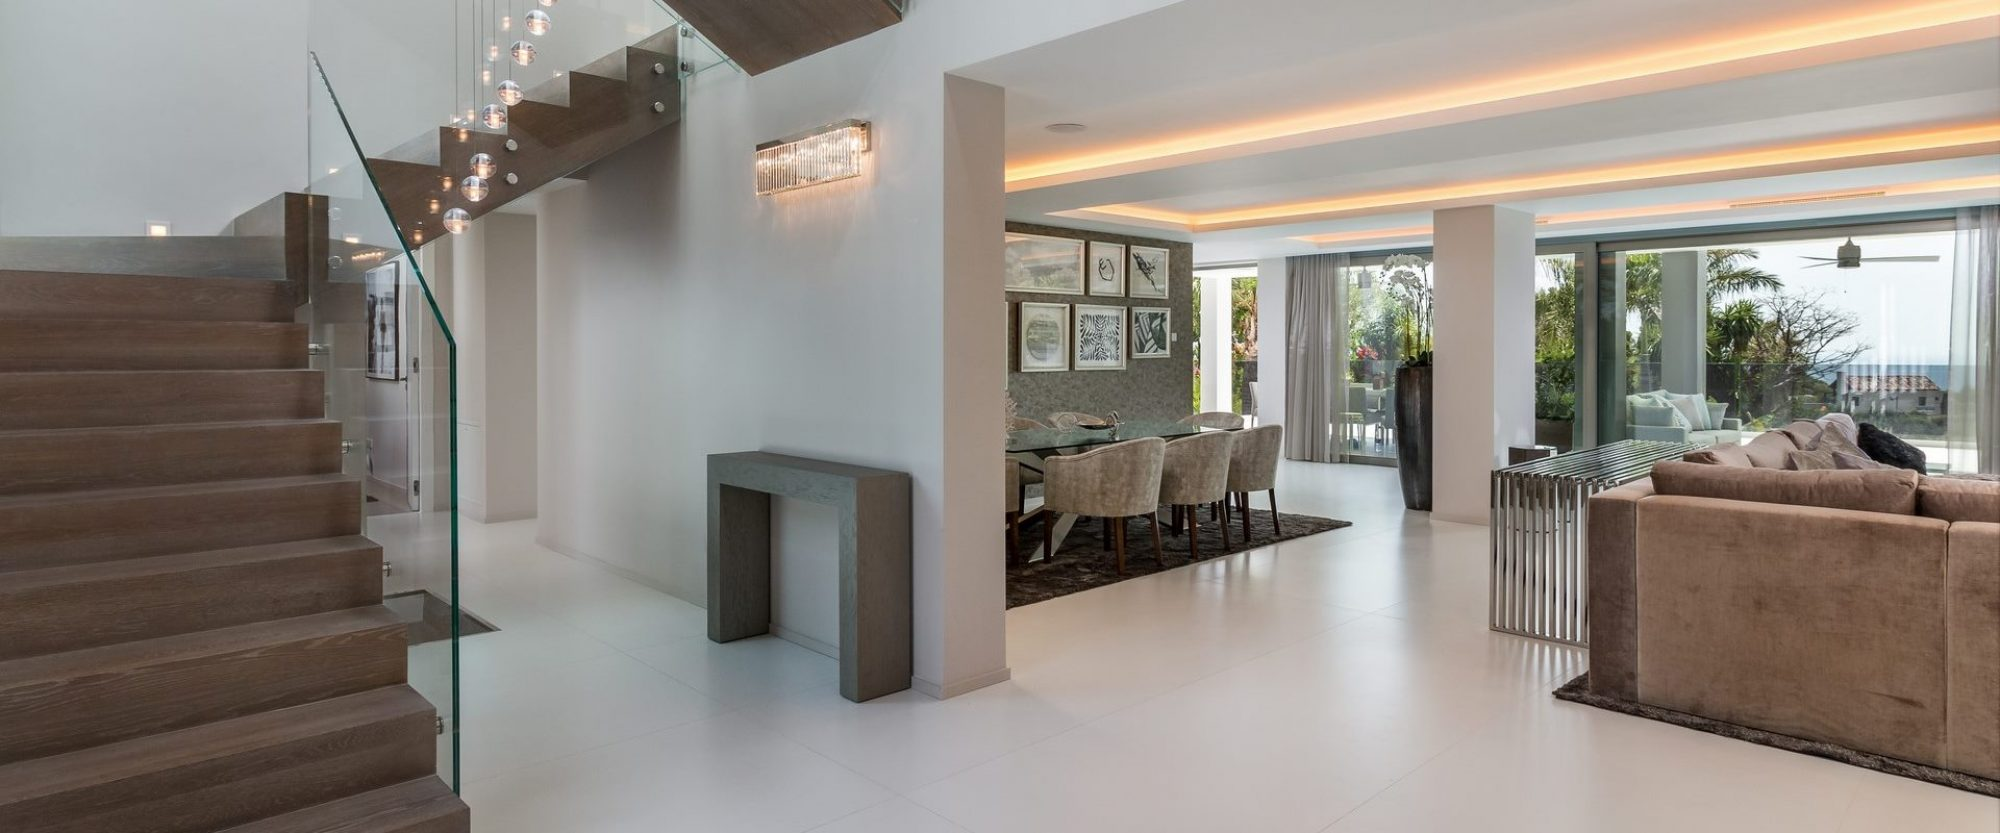 entrance through to main entertaining areas and terraces